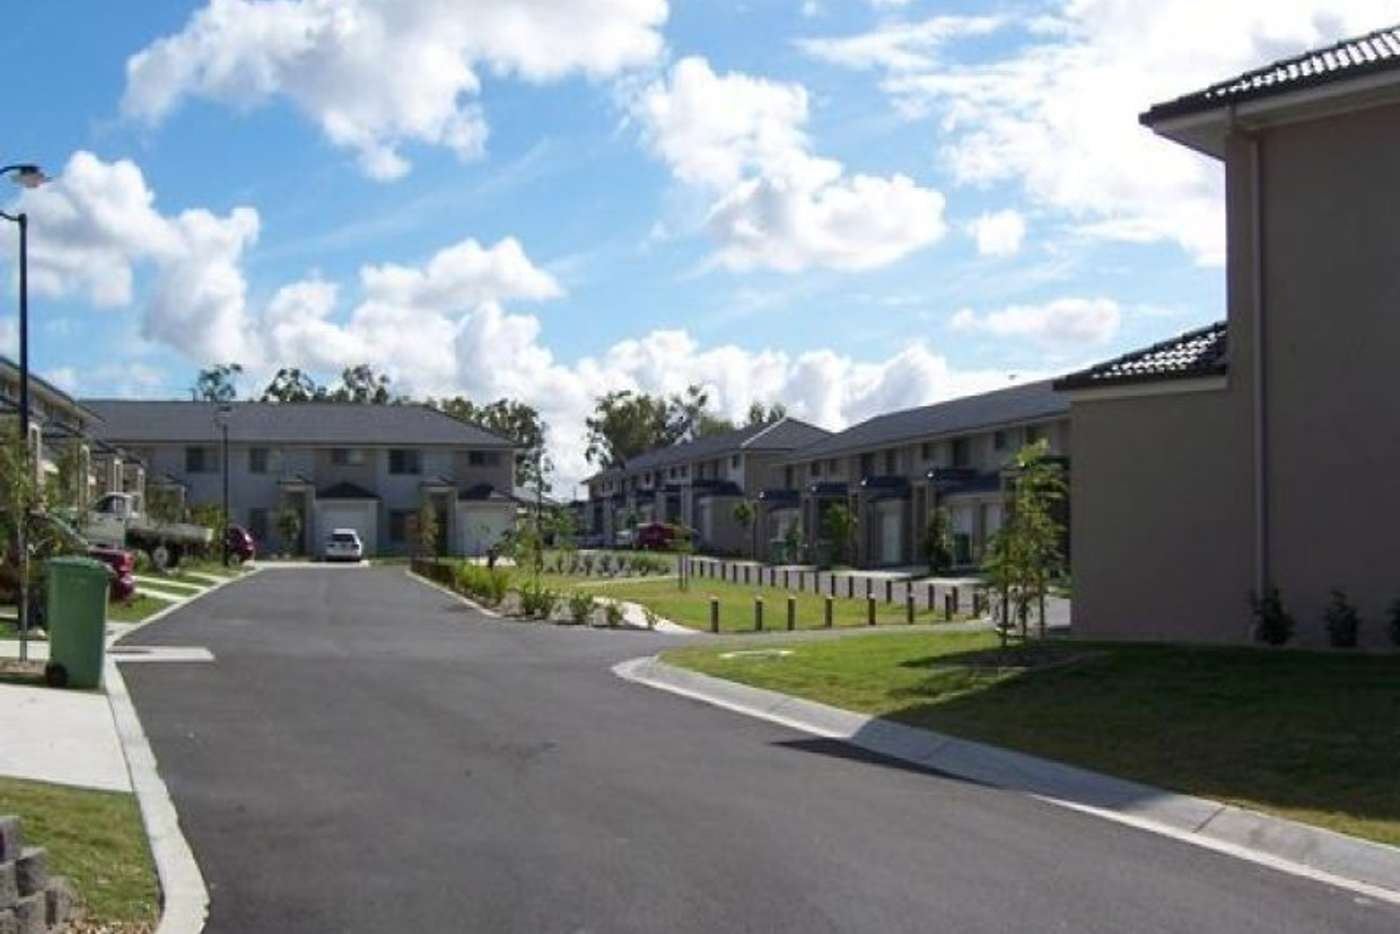 Main view of Homely townhouse listing, 116-136 Station Rd, Loganlea, Loganlea QLD 4131